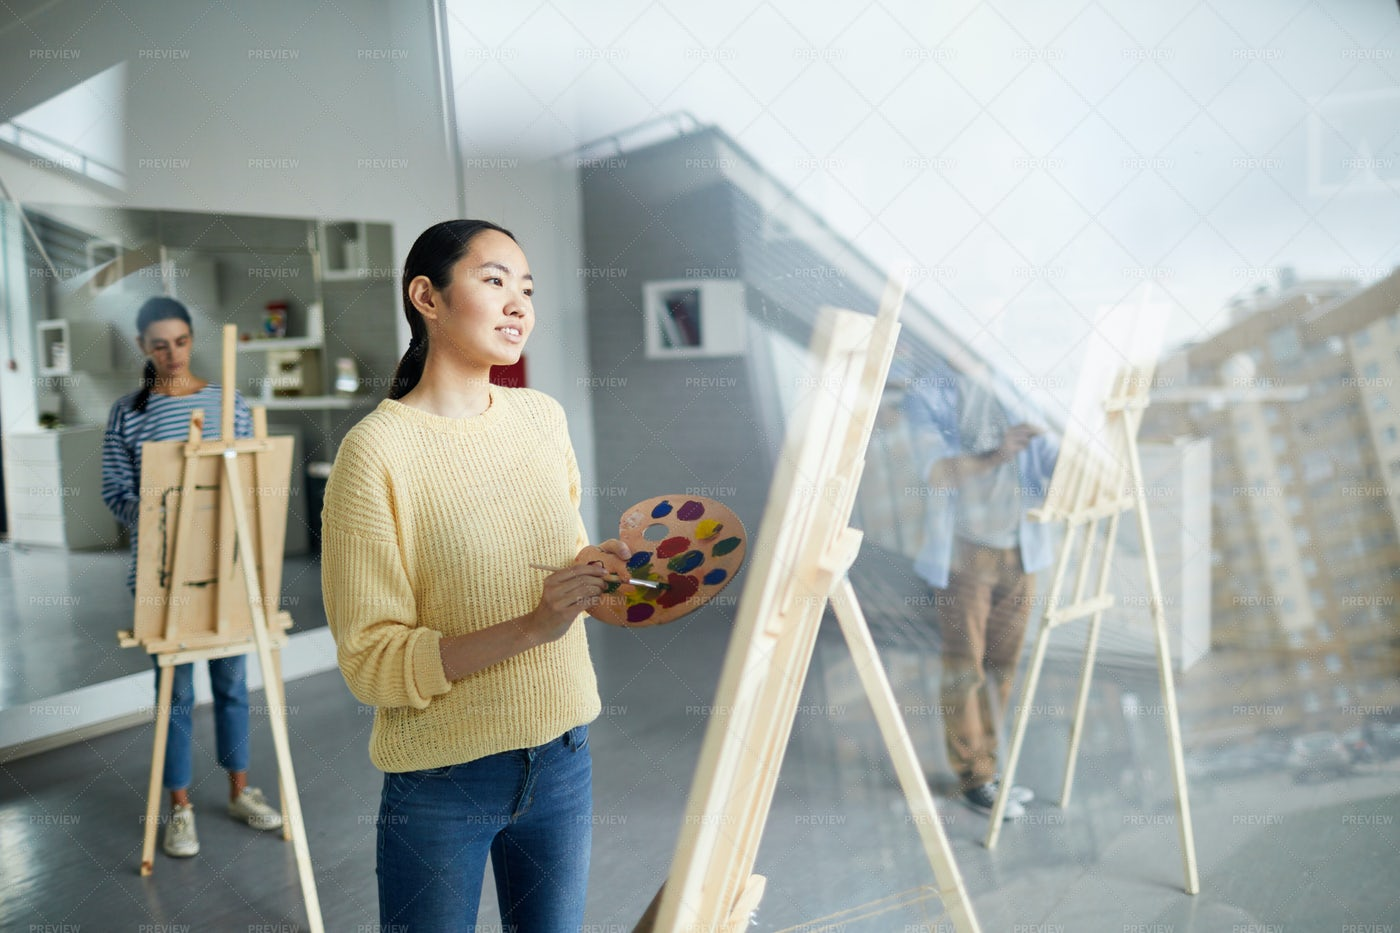 Girl In Front Of Easel: Stock Photos